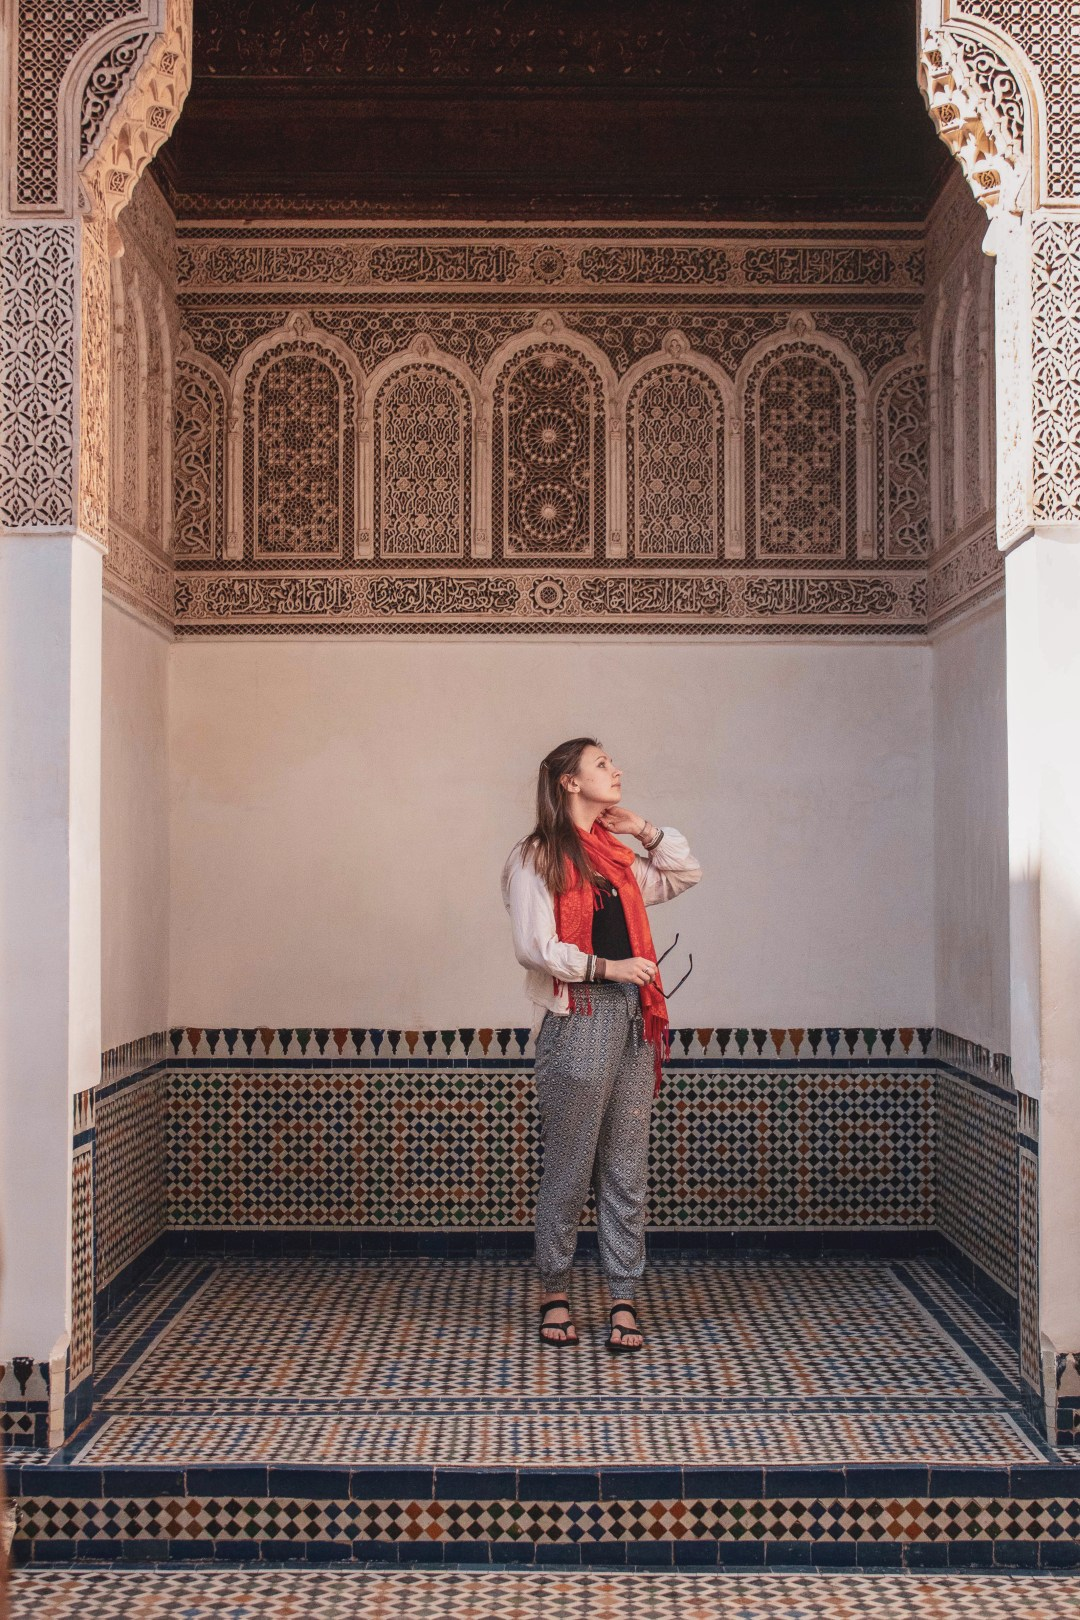 What to wear in the Middle East: Middle East Dress Code for Women